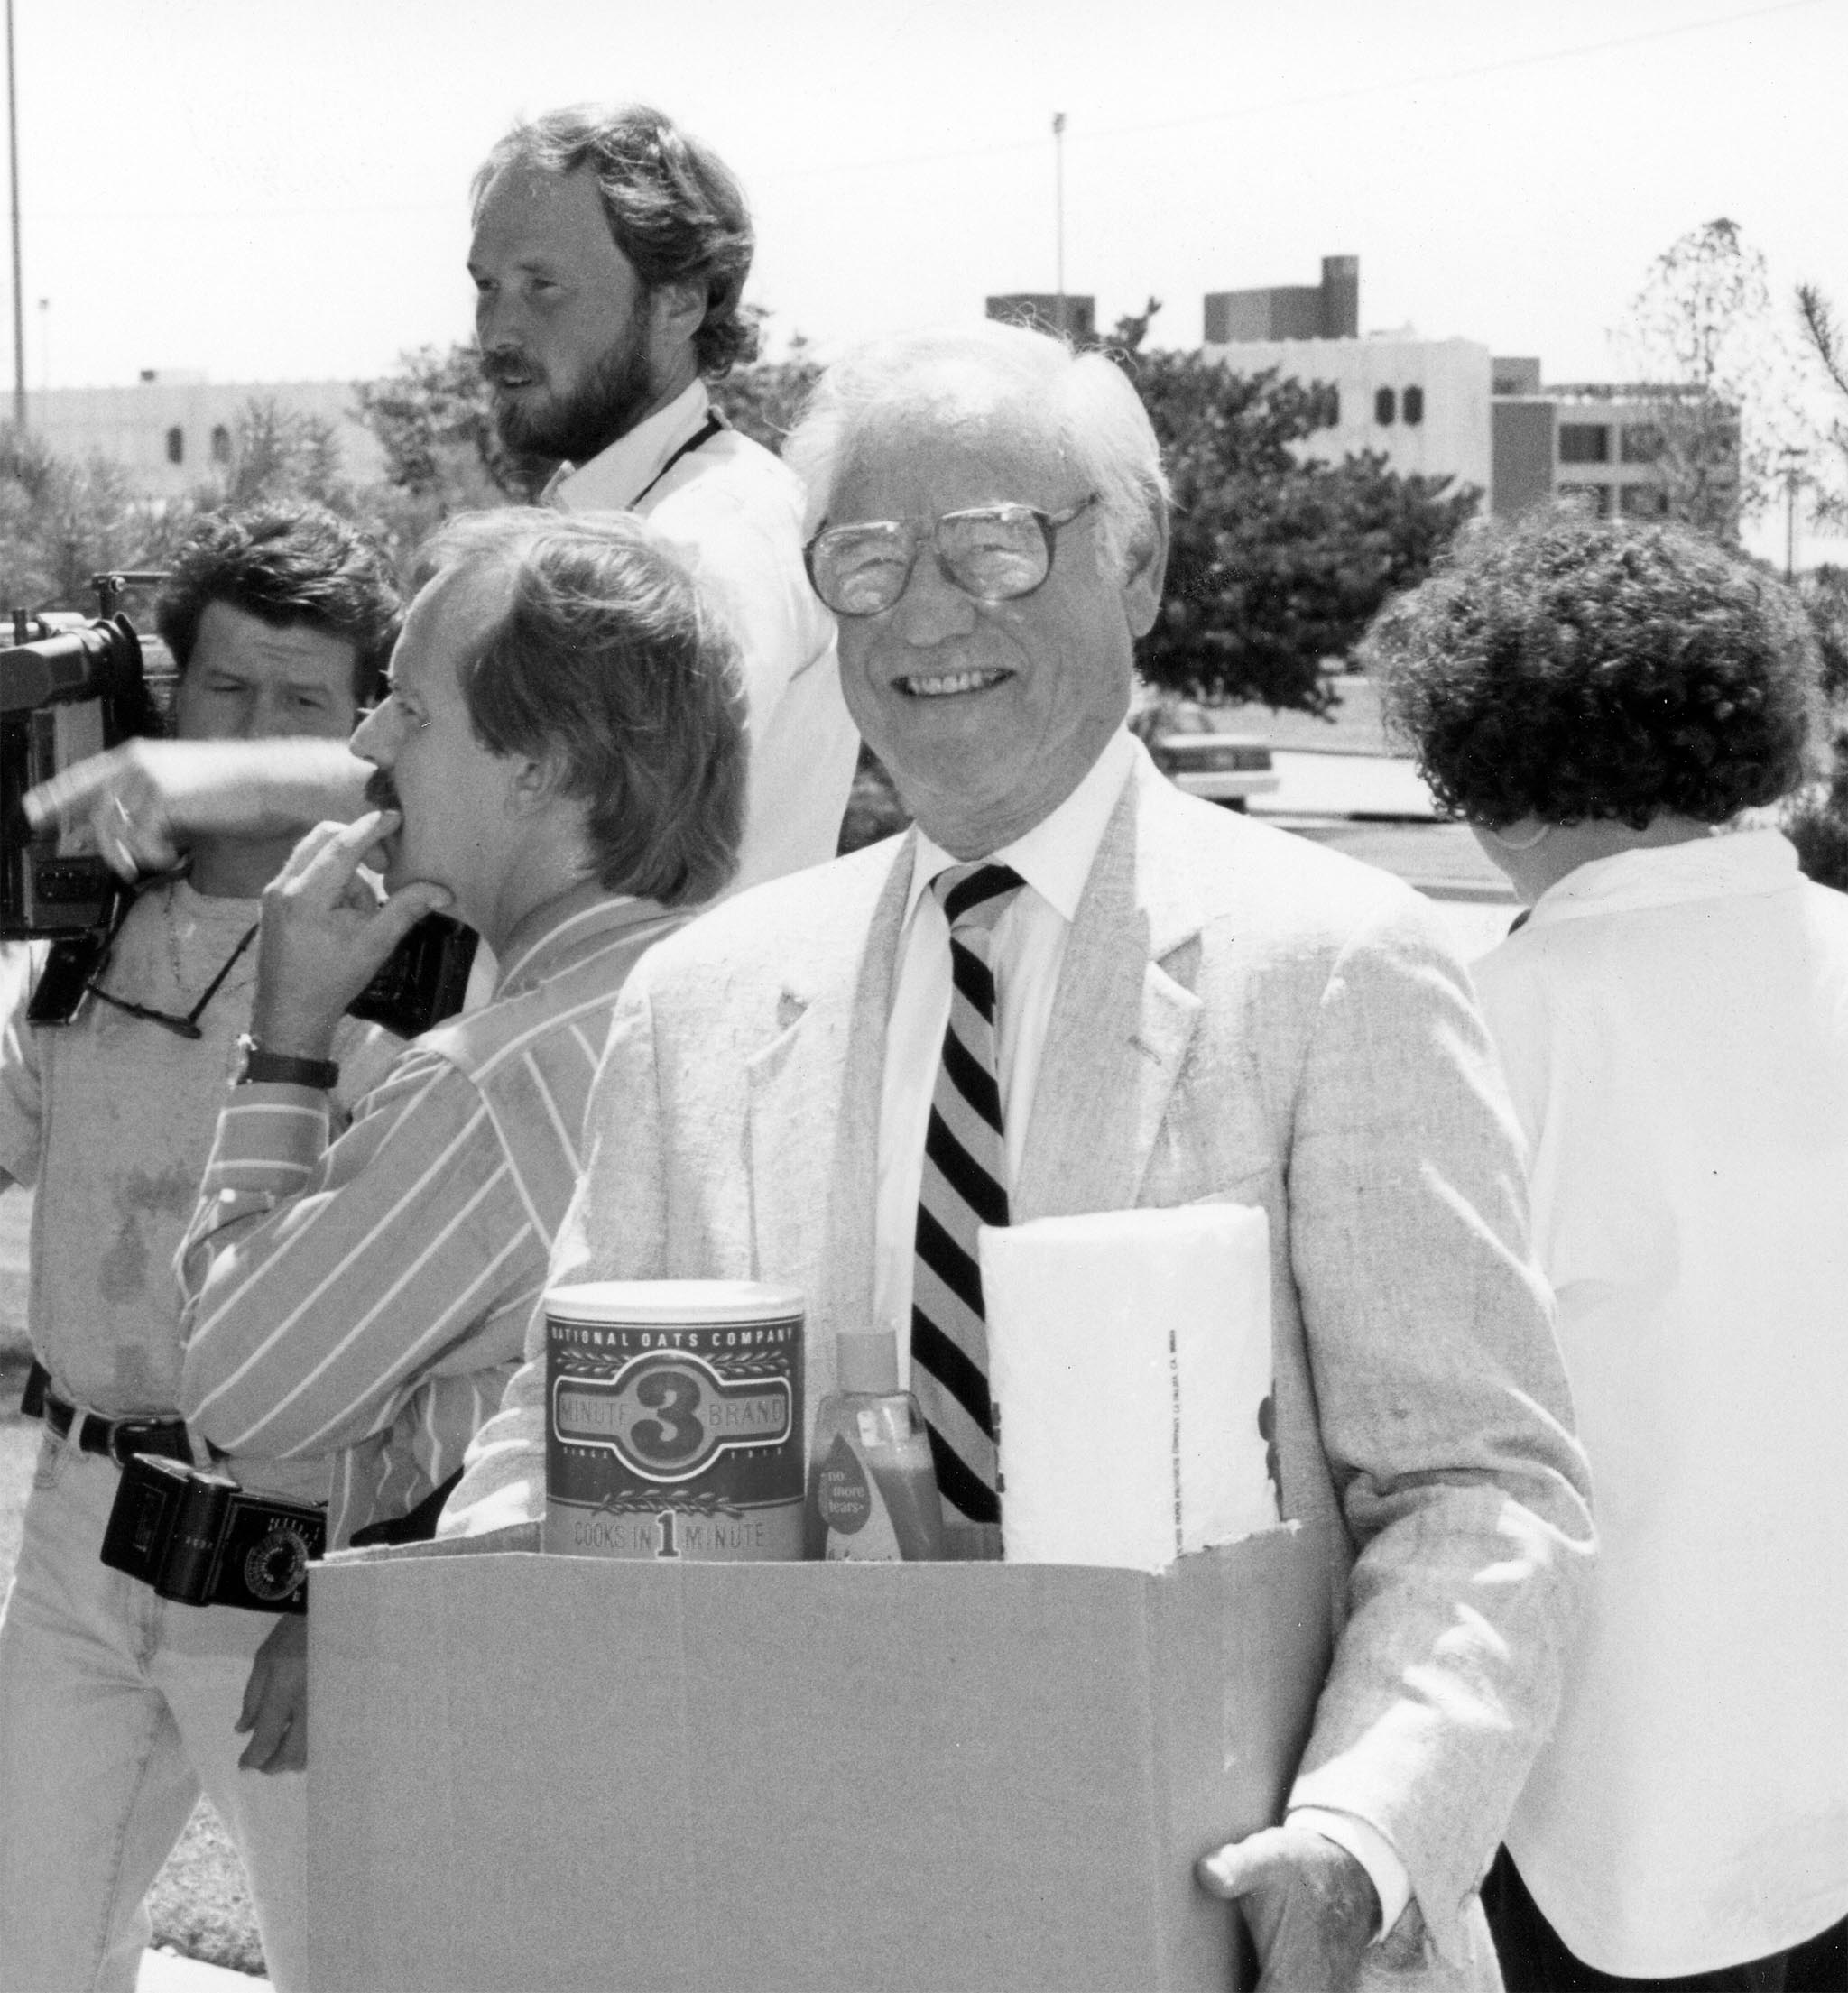 The Great Flood of 1993 in the Midwest is considered one the most significant and damaging natural disasters in the history of the United States. Oklahoma Farm Bureau members stepped up to donate food, cleaning items, paper products and other goods to send to families hit hard by the flood. In this photo, OKFB President James L. Lockett lends a hand to load a relief truck headed for the flood-ravaged Midwest. OKFB members also sent monetary donations to a special disaster aid fund created by the American Farm Bureau Federation.